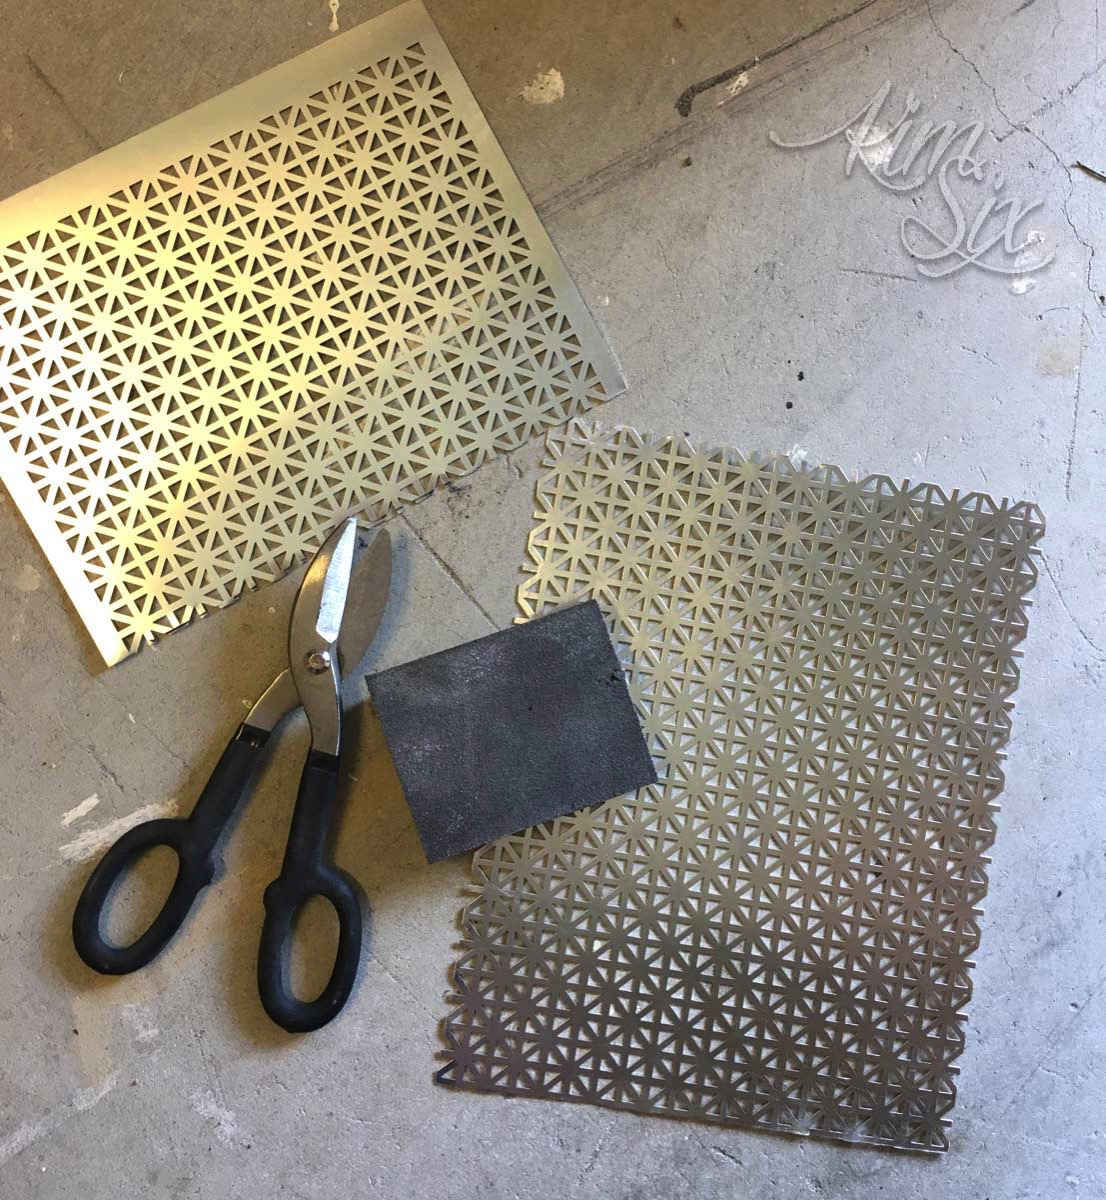 Cutting performated decorative metal sheets for photo frame